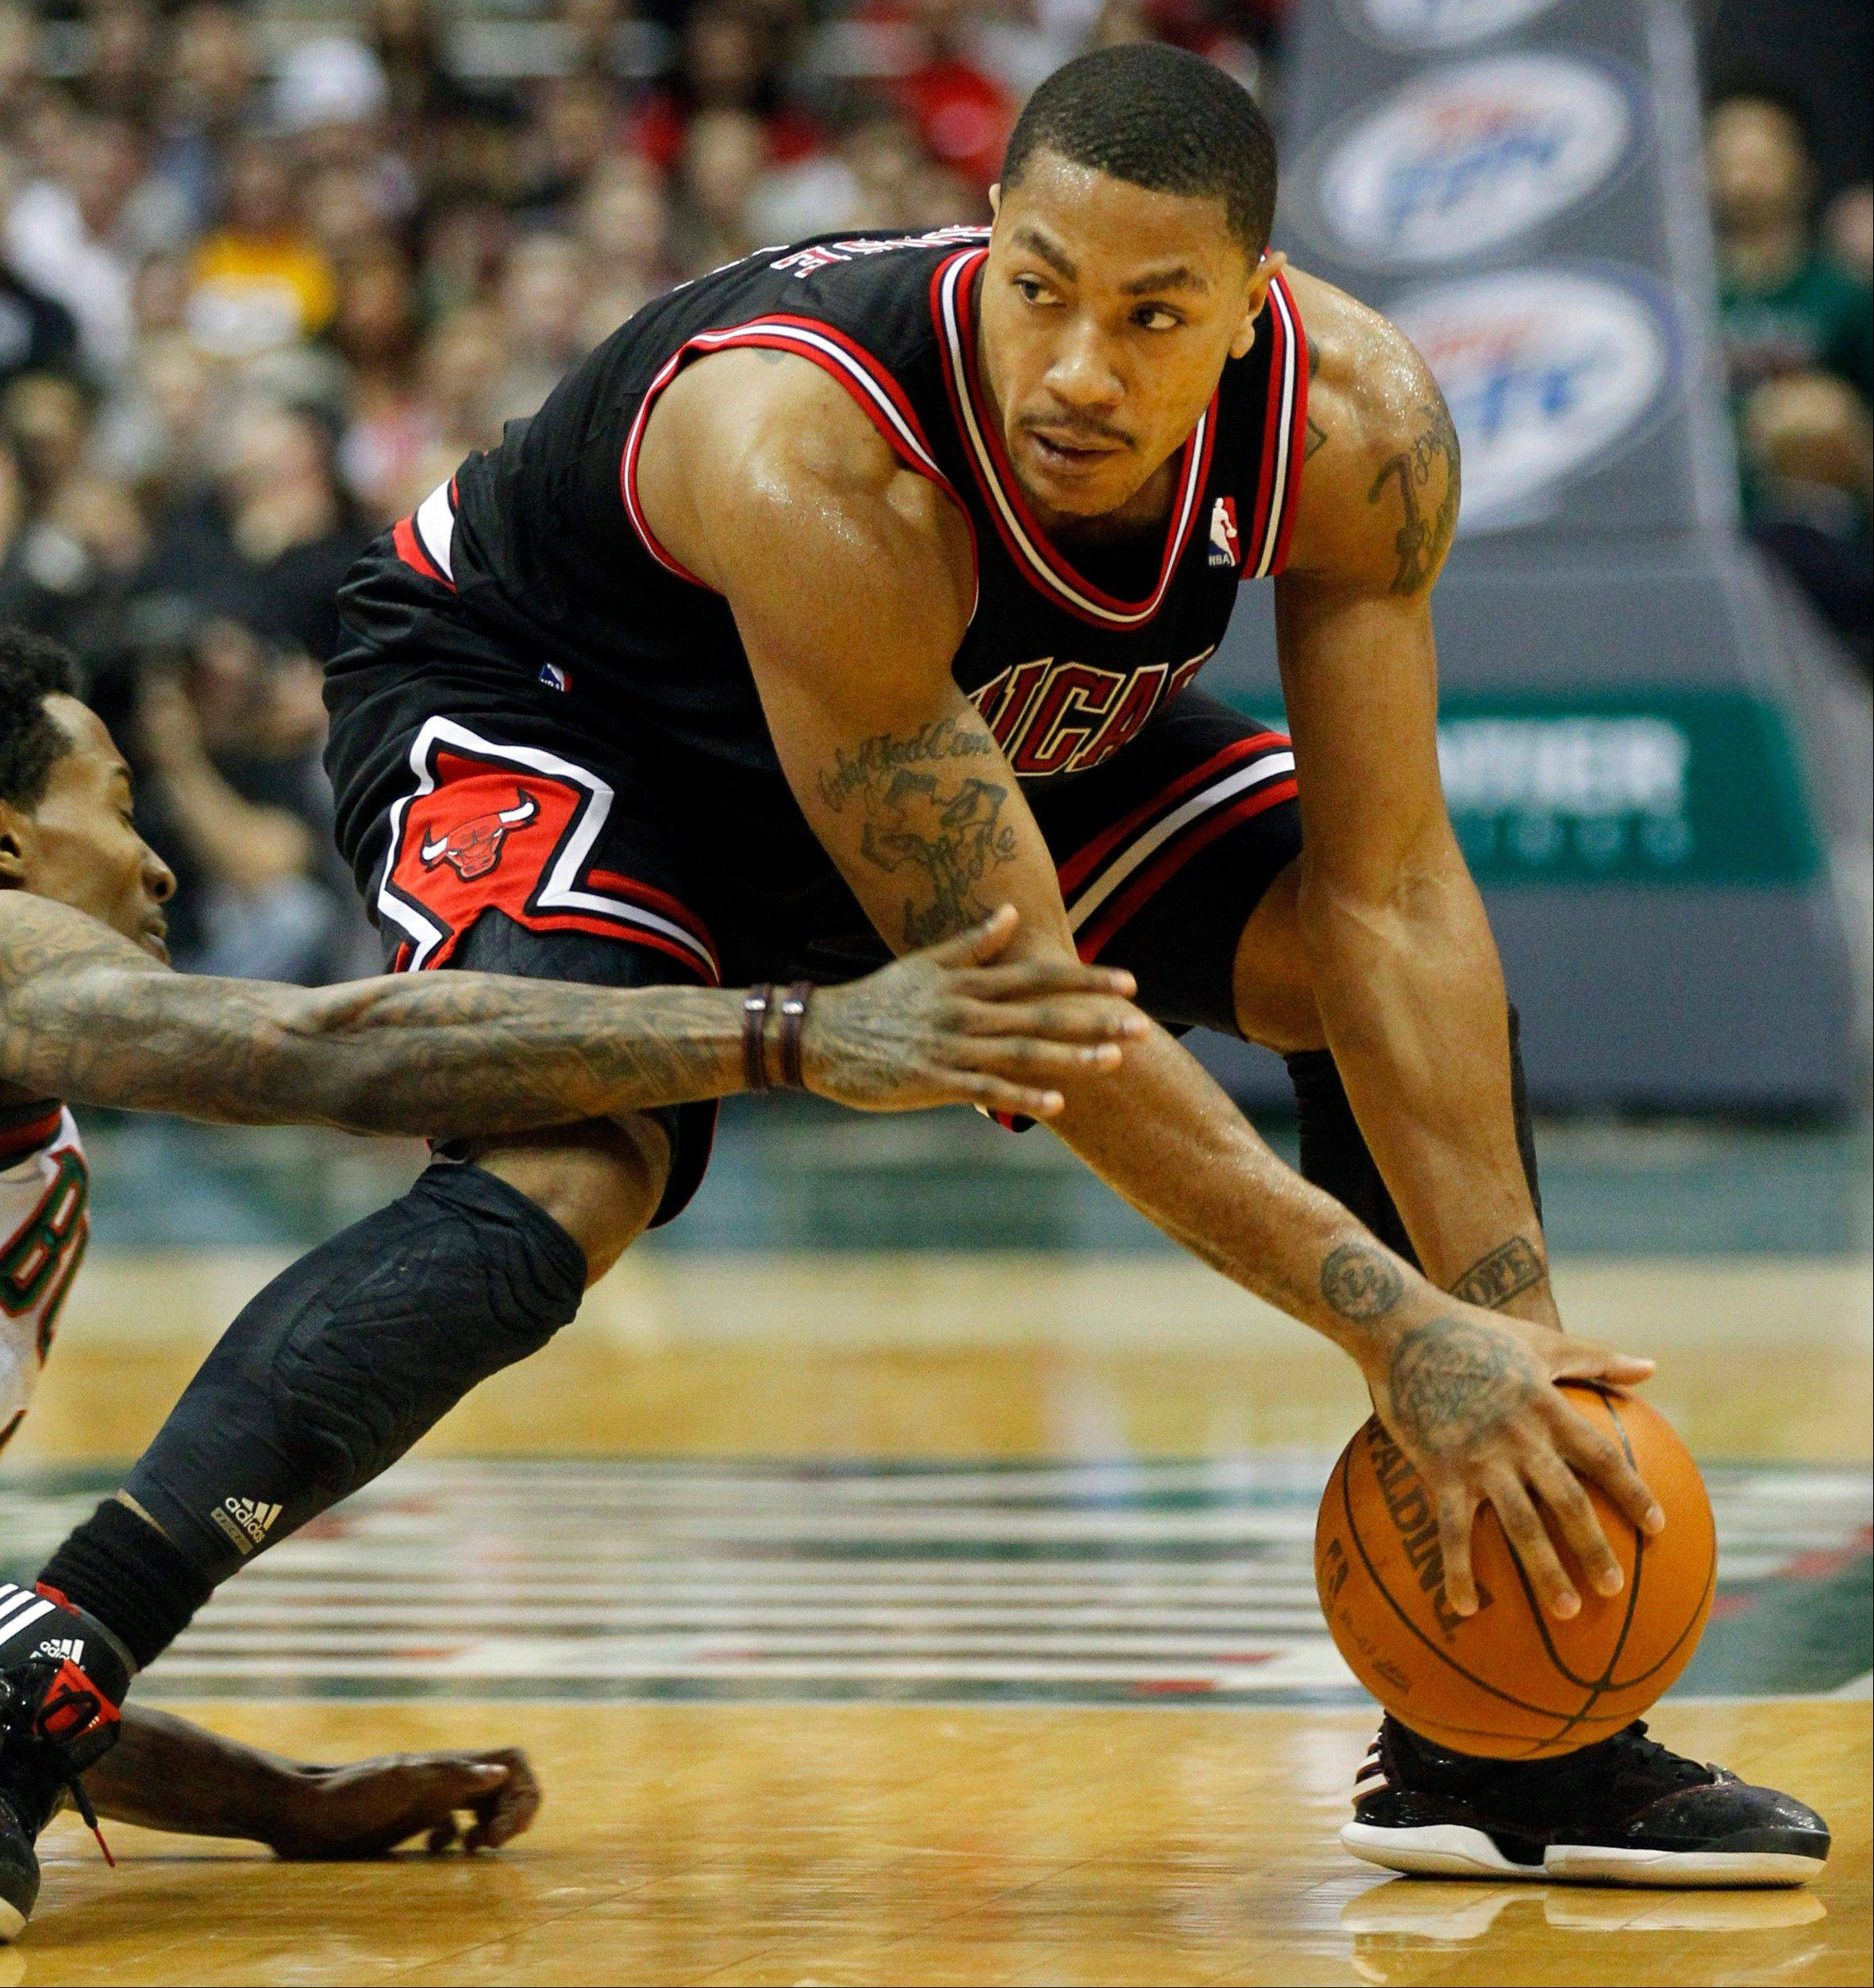 Derrick Rose picks up a loose ball ahead of the Bucks' Brandon Jennings during the first half Wednesday in Milwaukee